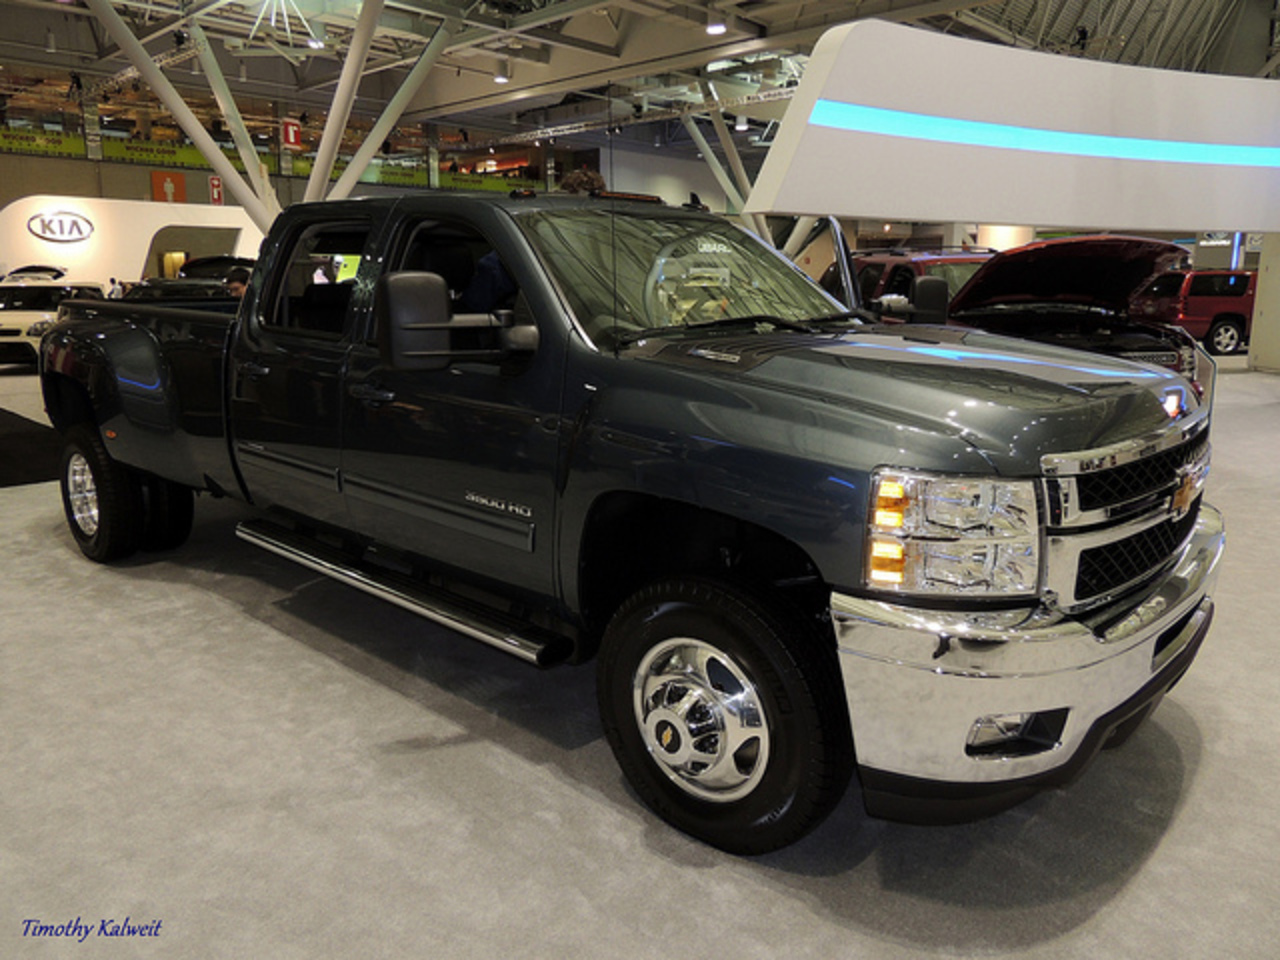 2013 Chevrolet Silverado 3500 HD | Flickr - Photo Sharing!